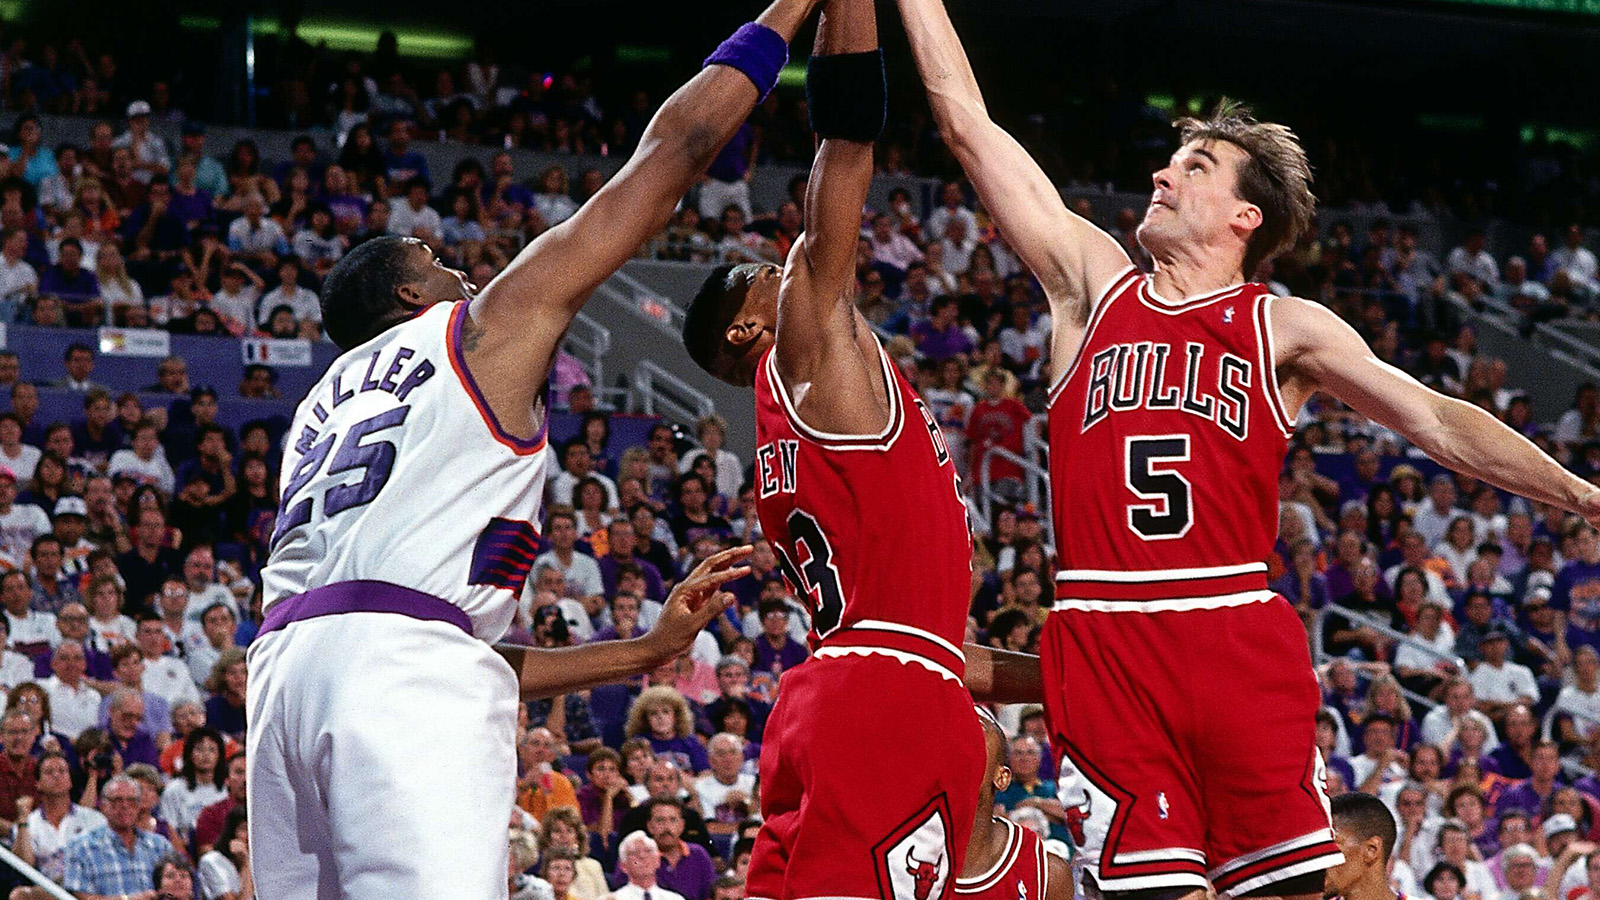 John Paxson going for a rebound in the 1993 NBA Finals